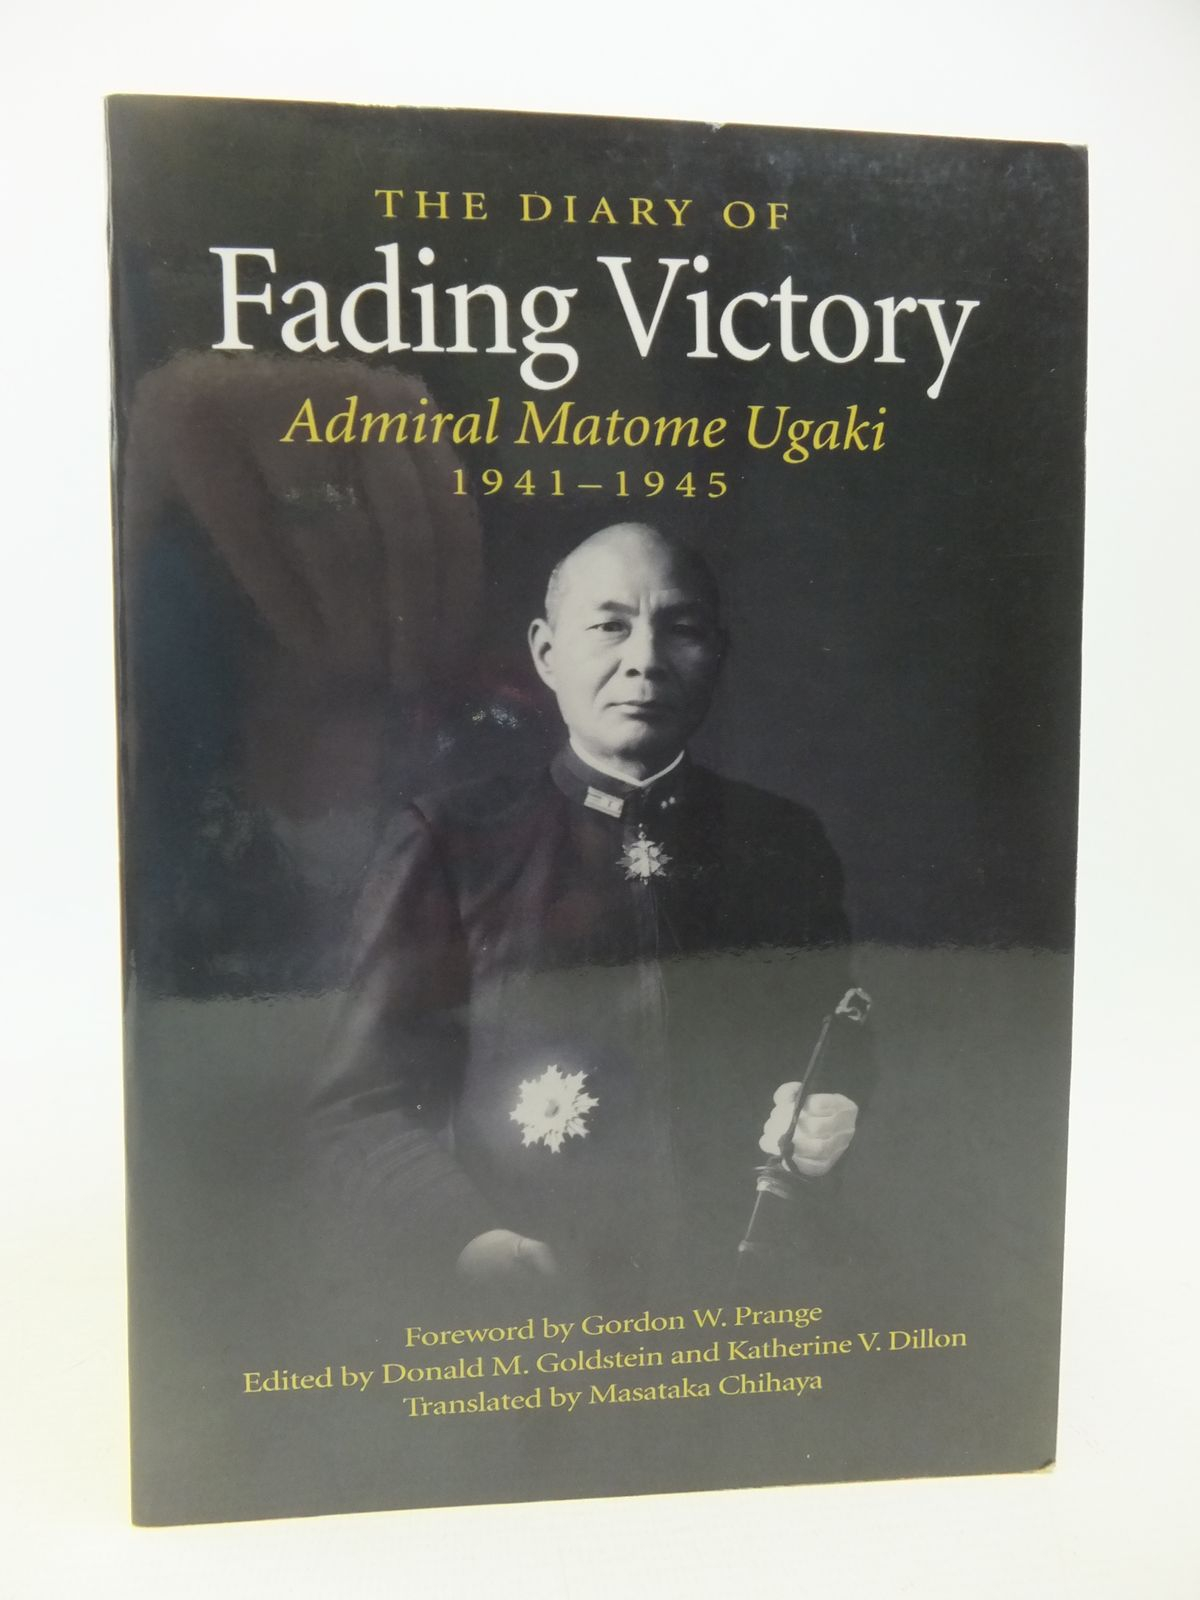 Photo of THE DIARY OF FADING VICTORY ADMIRAL MATOME UGAKI 1941-1945